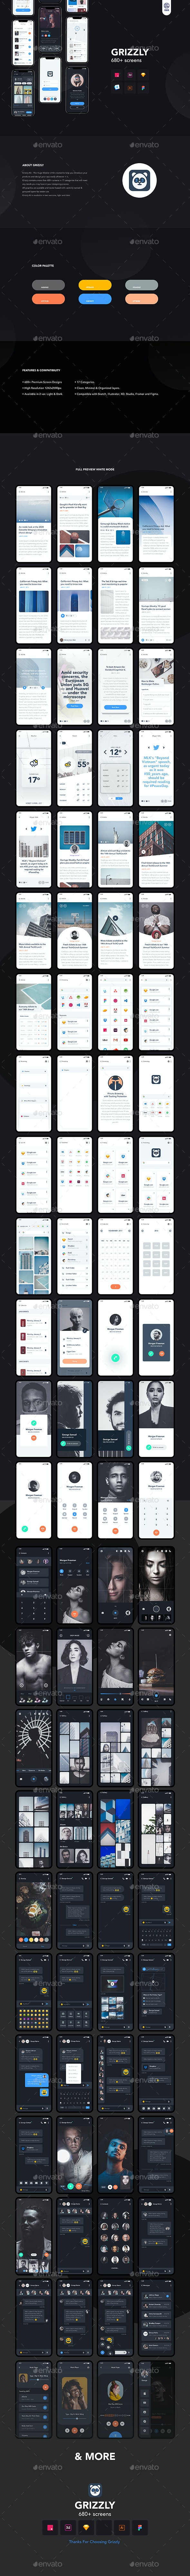 Grizzly | Mobile App Ui KIt - User Interfaces Web Elements